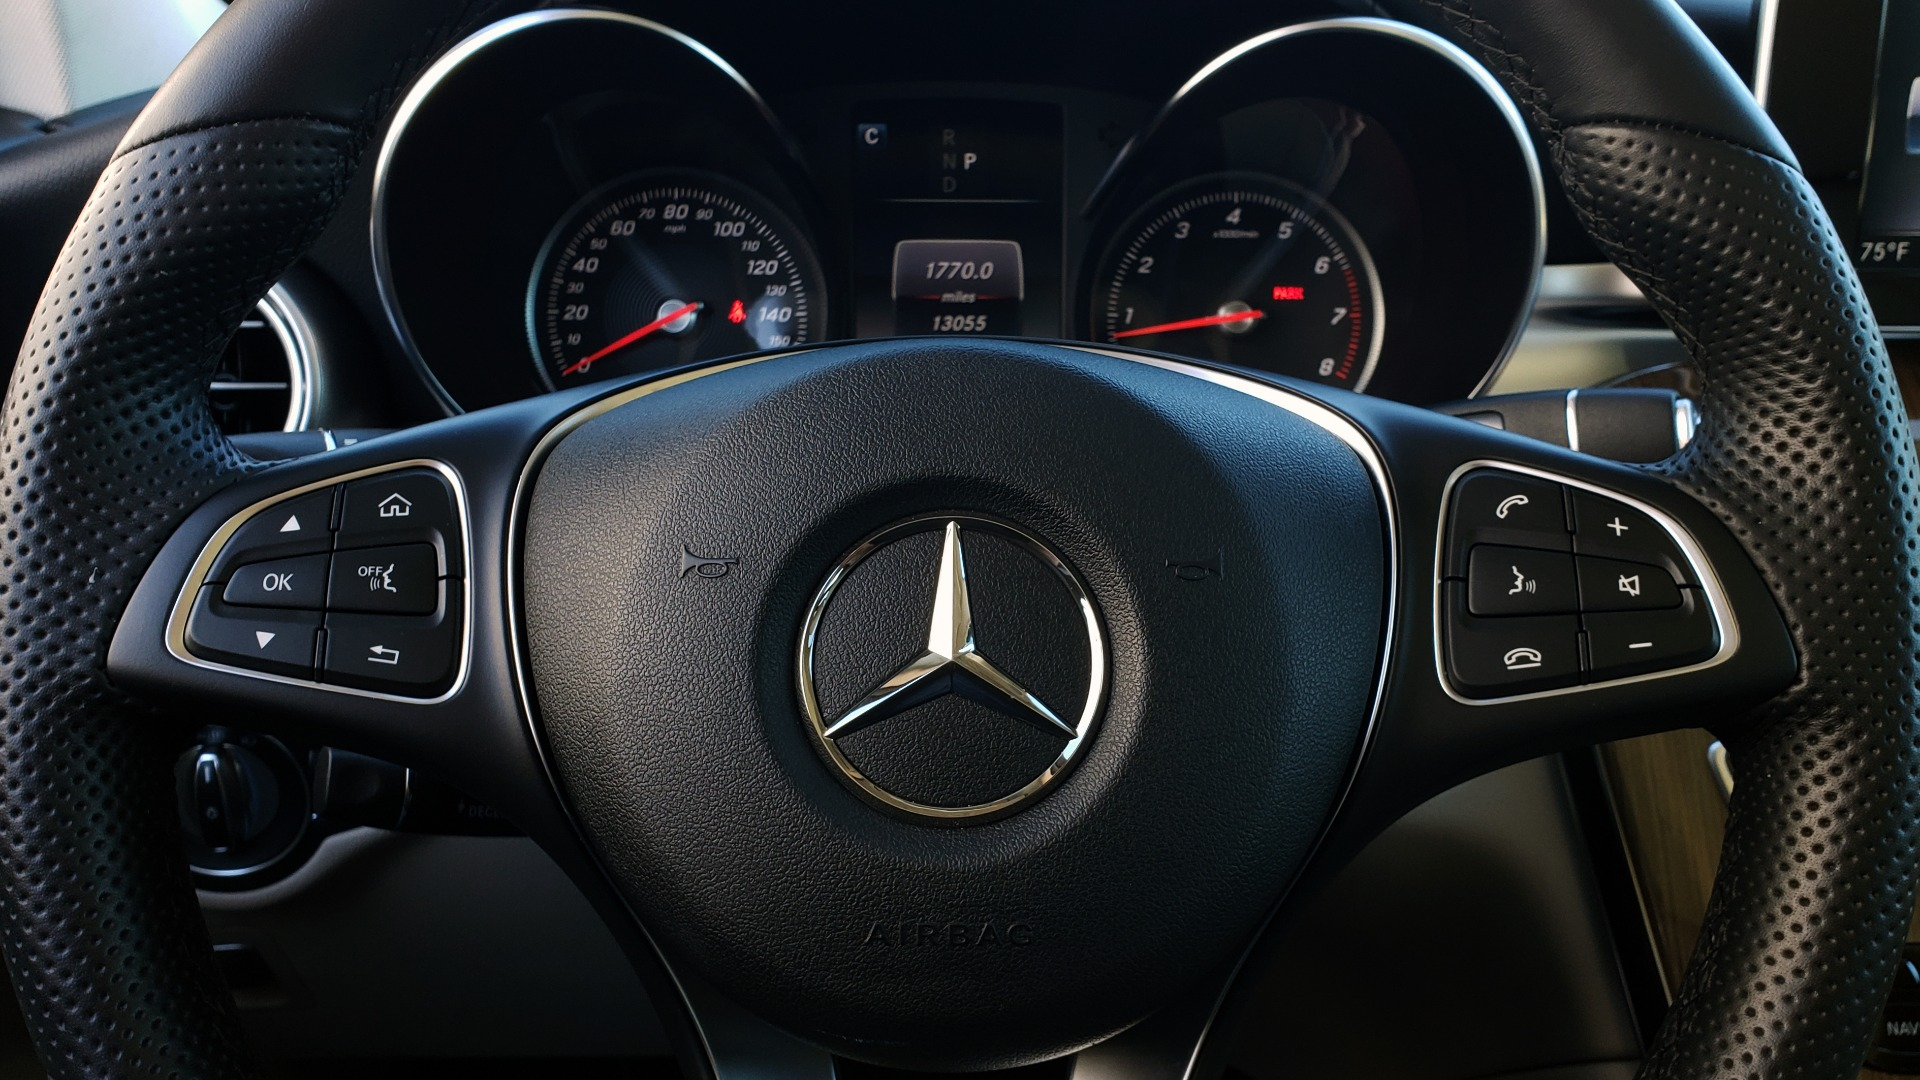 Used 2018 Mercedes-Benz GLC 300 4MATIC / PREM PKG / NAV / SUNROOF / REARVIEW for sale $36,995 at Formula Imports in Charlotte NC 28227 45